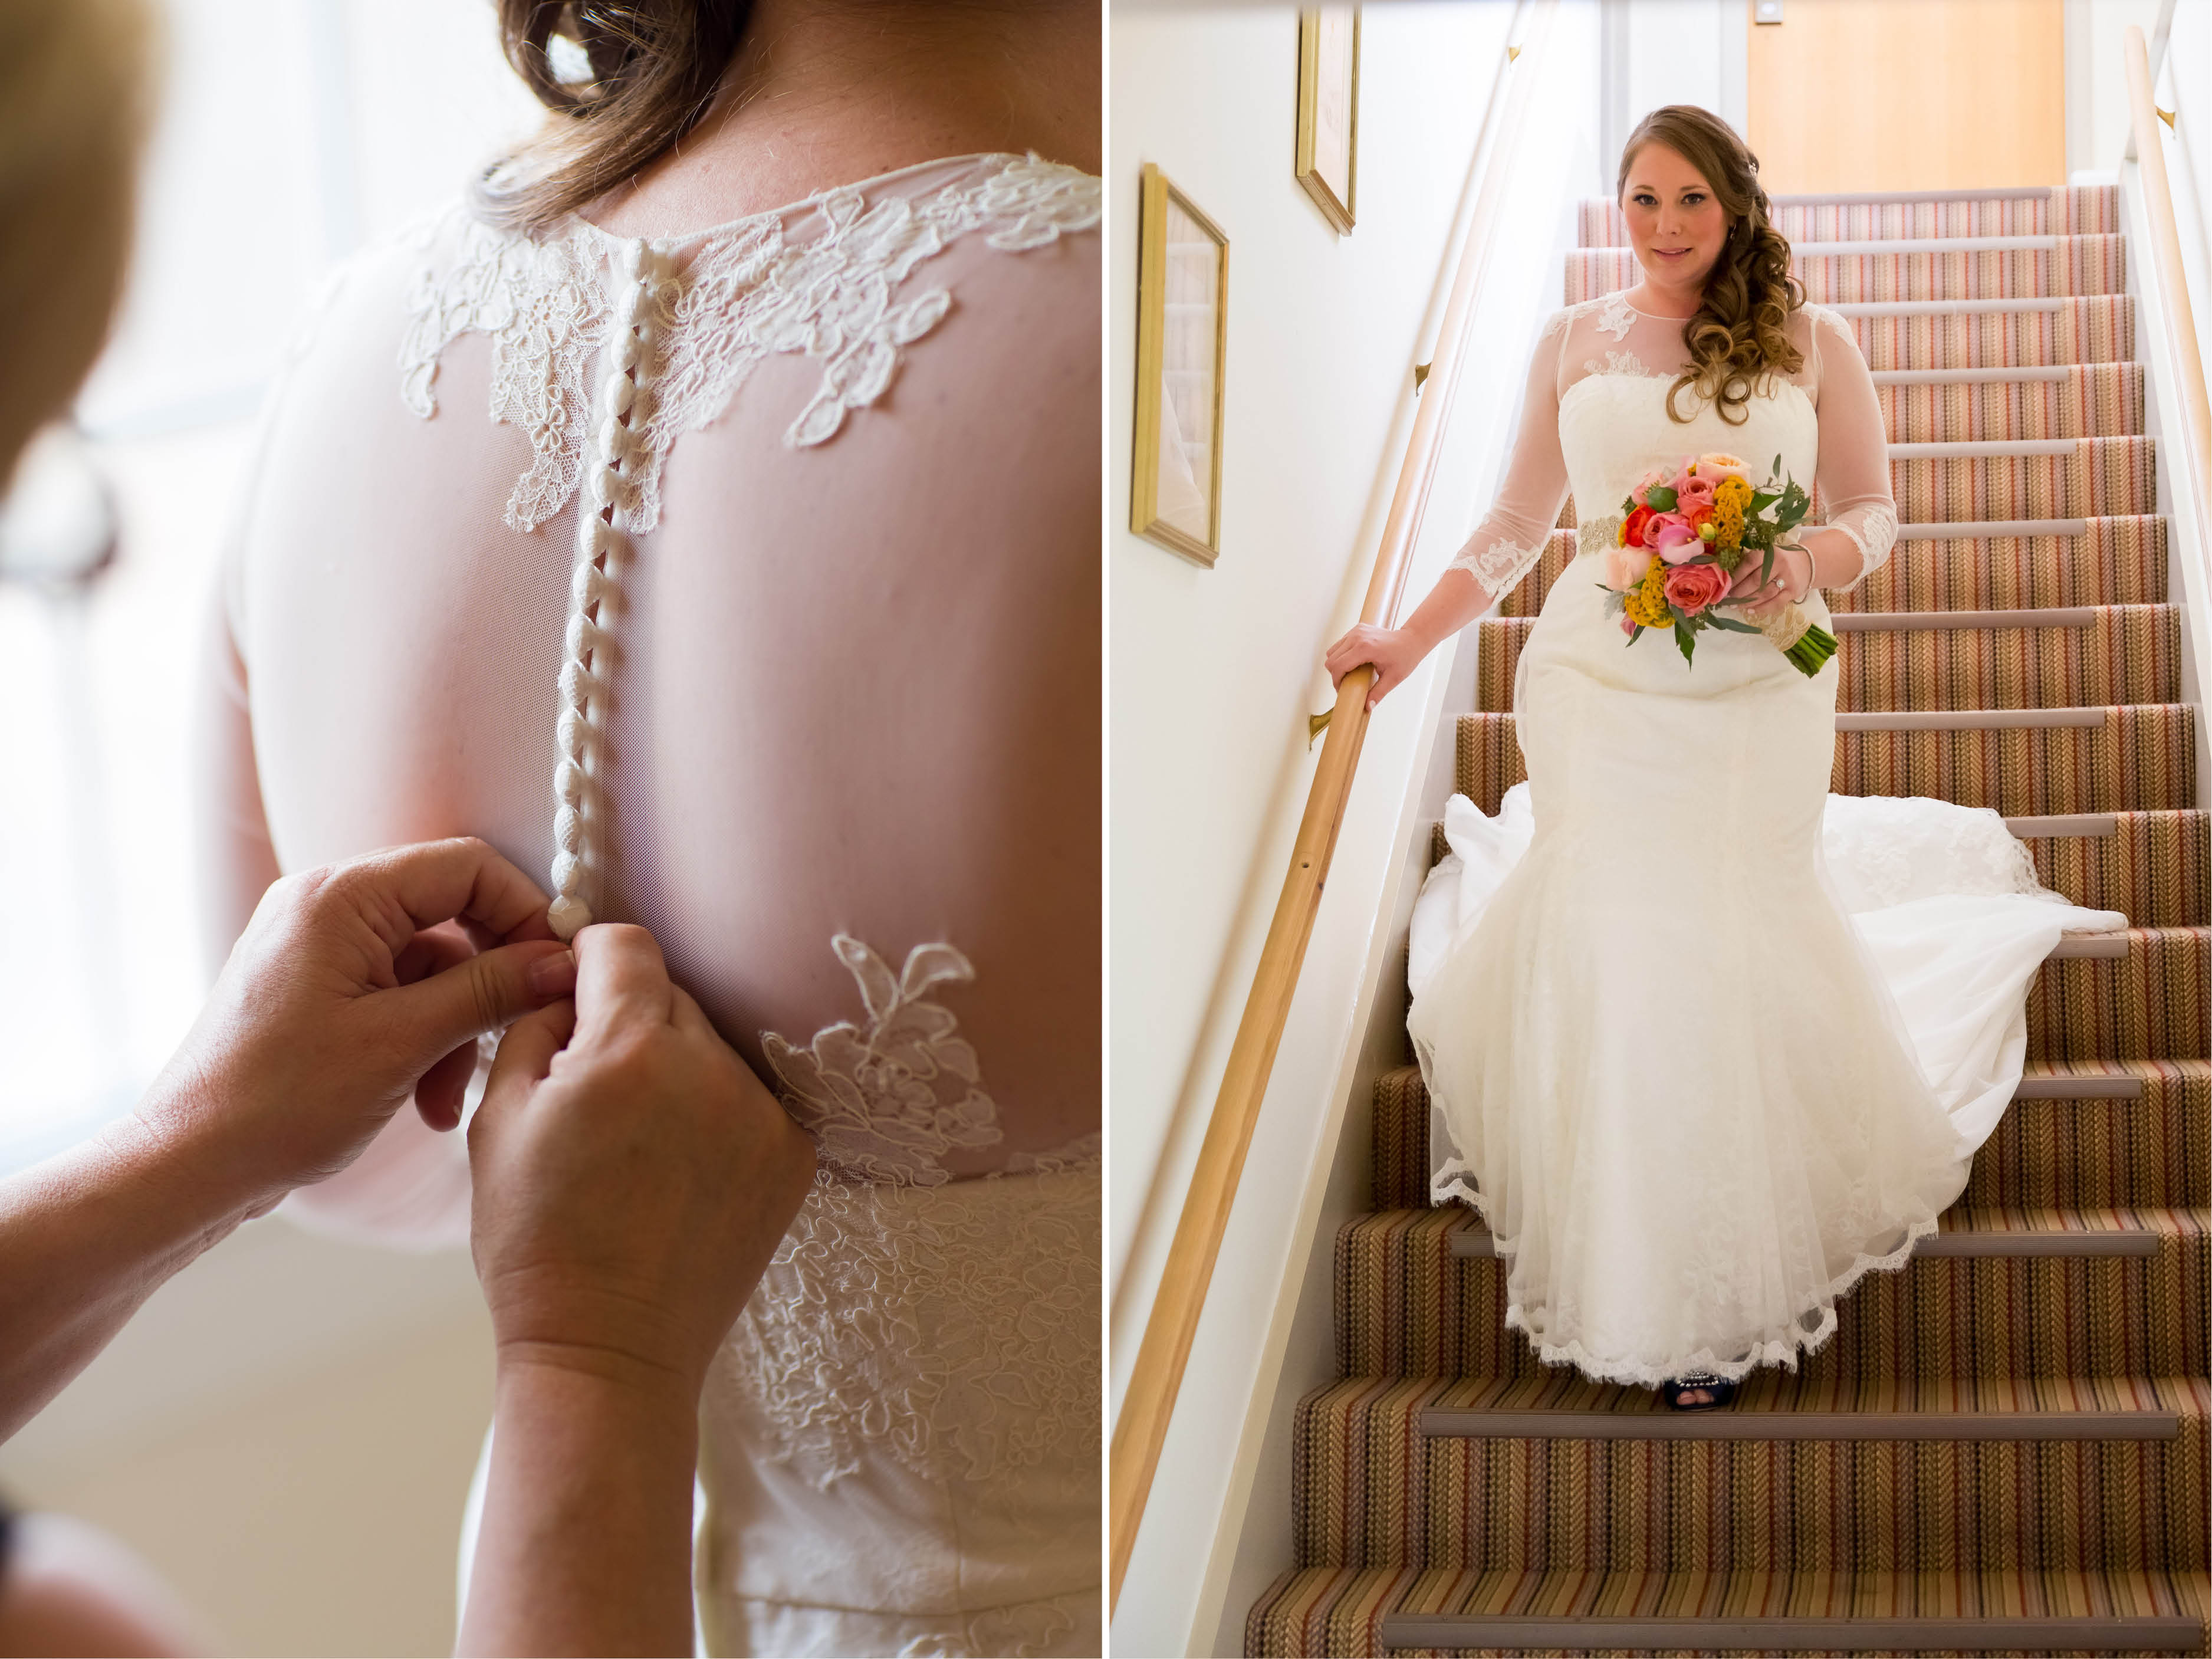 Emma_cleary_photography the Metropolitan Building wedding3